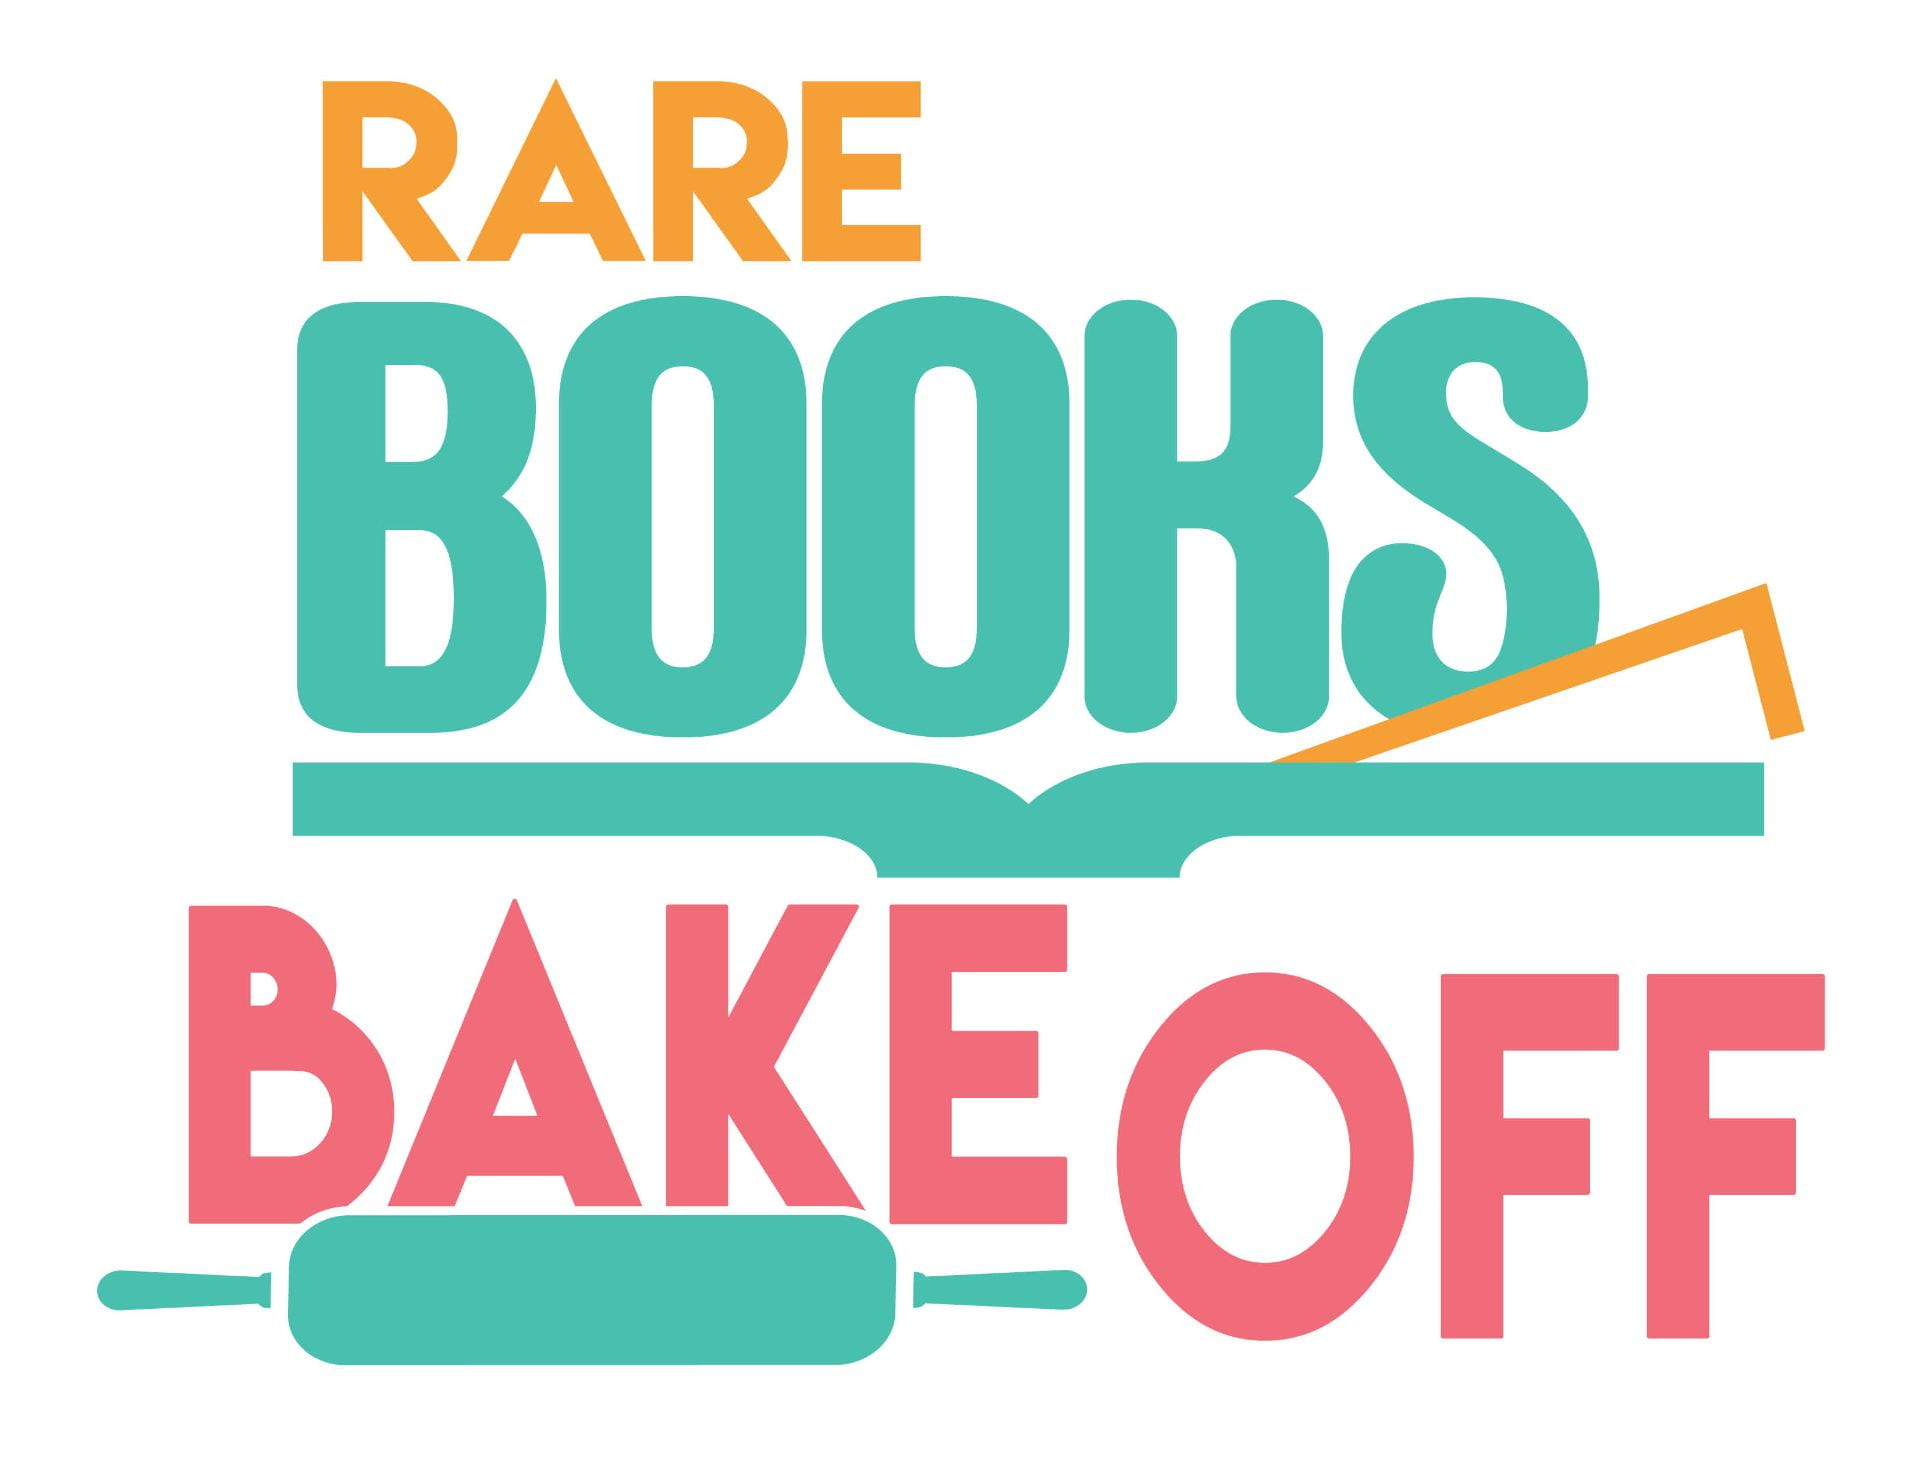 """Image shows a logo that says """"Rare Books Bake Off"""""""